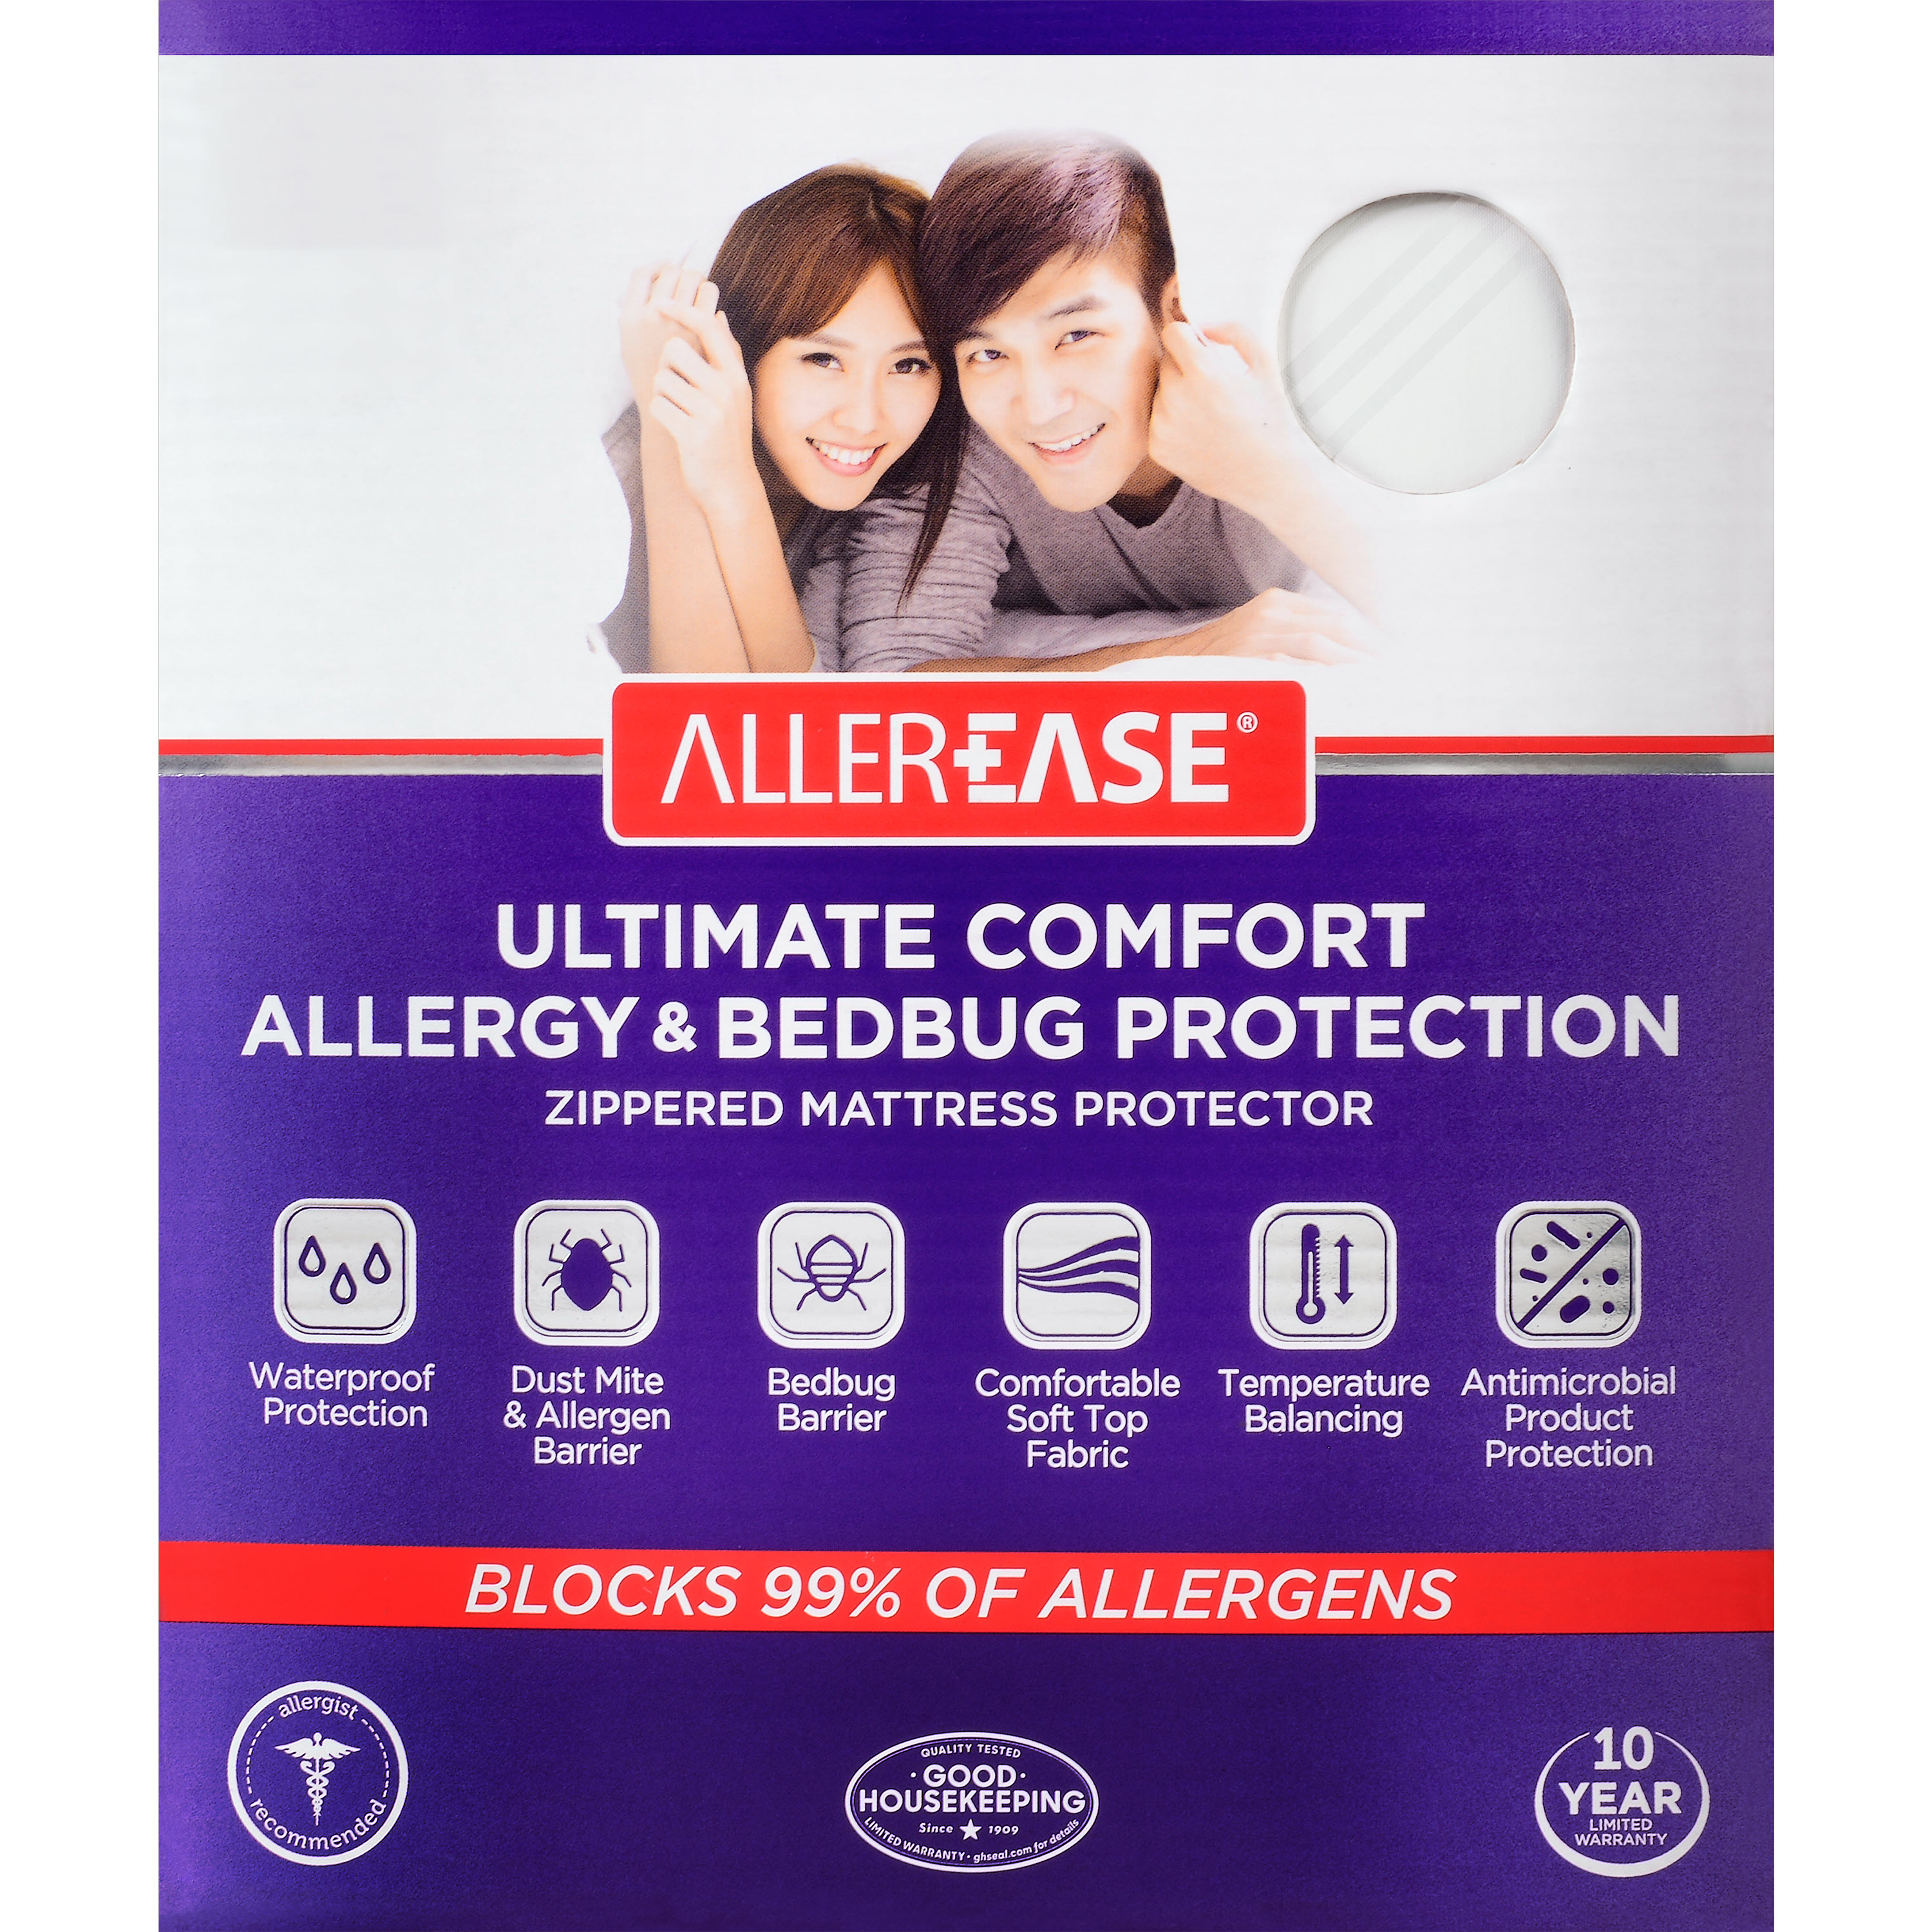 AllerEase Ultimate Protection and Comfort Waterproof, Bed Bug, Antimicrobial Zippered... by American Textile Company